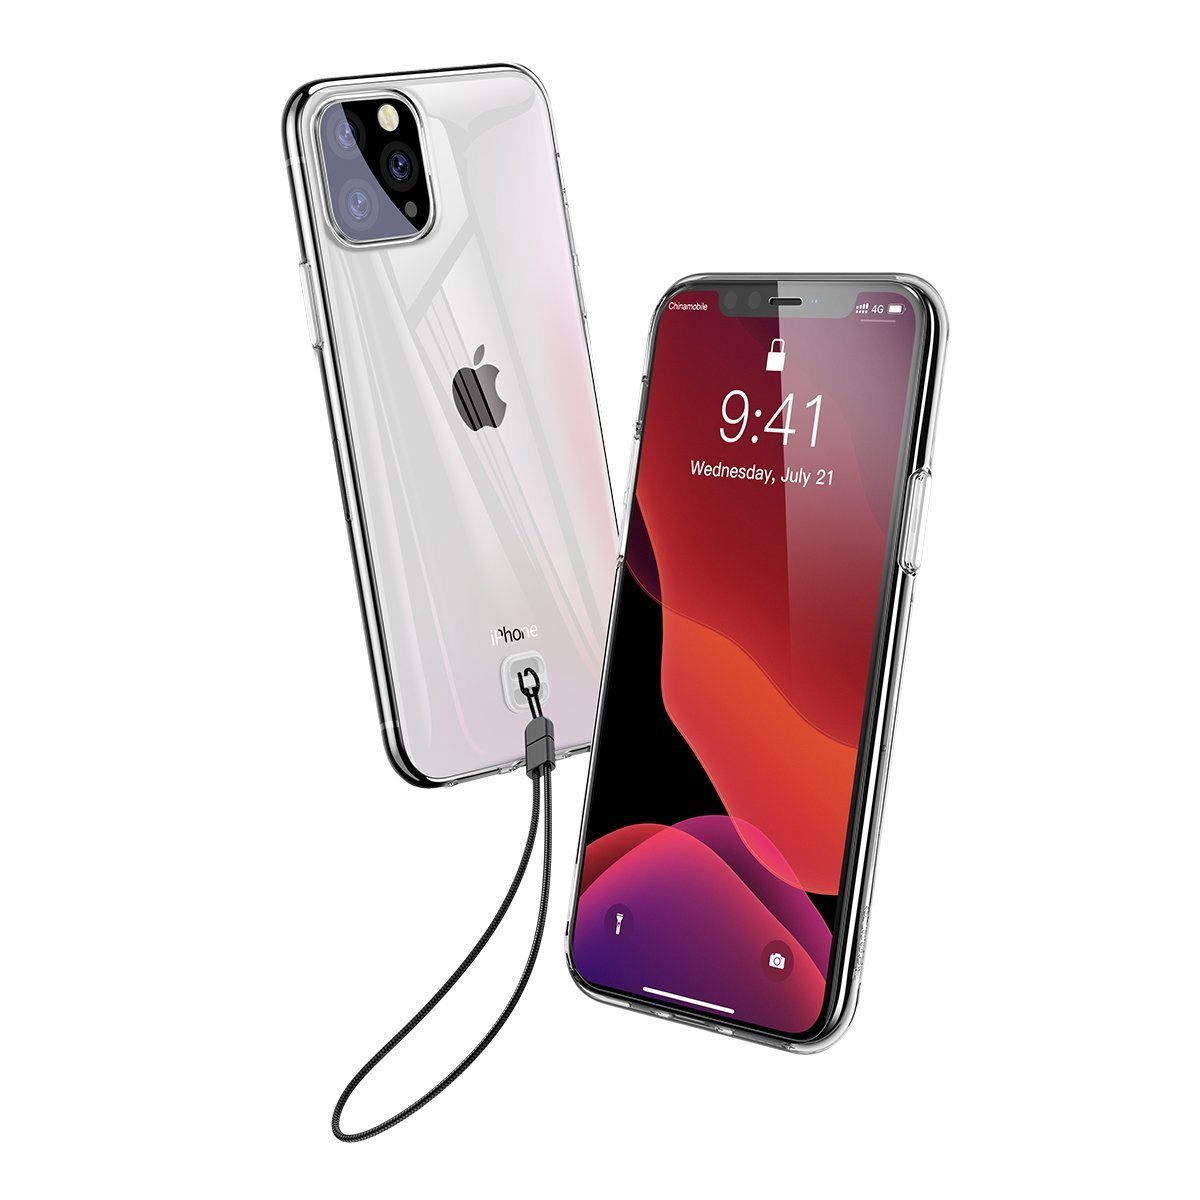 Husa Apple iPhone 11 Pro, Baseus Transparent Key, Alb, 5.8 inch imagine